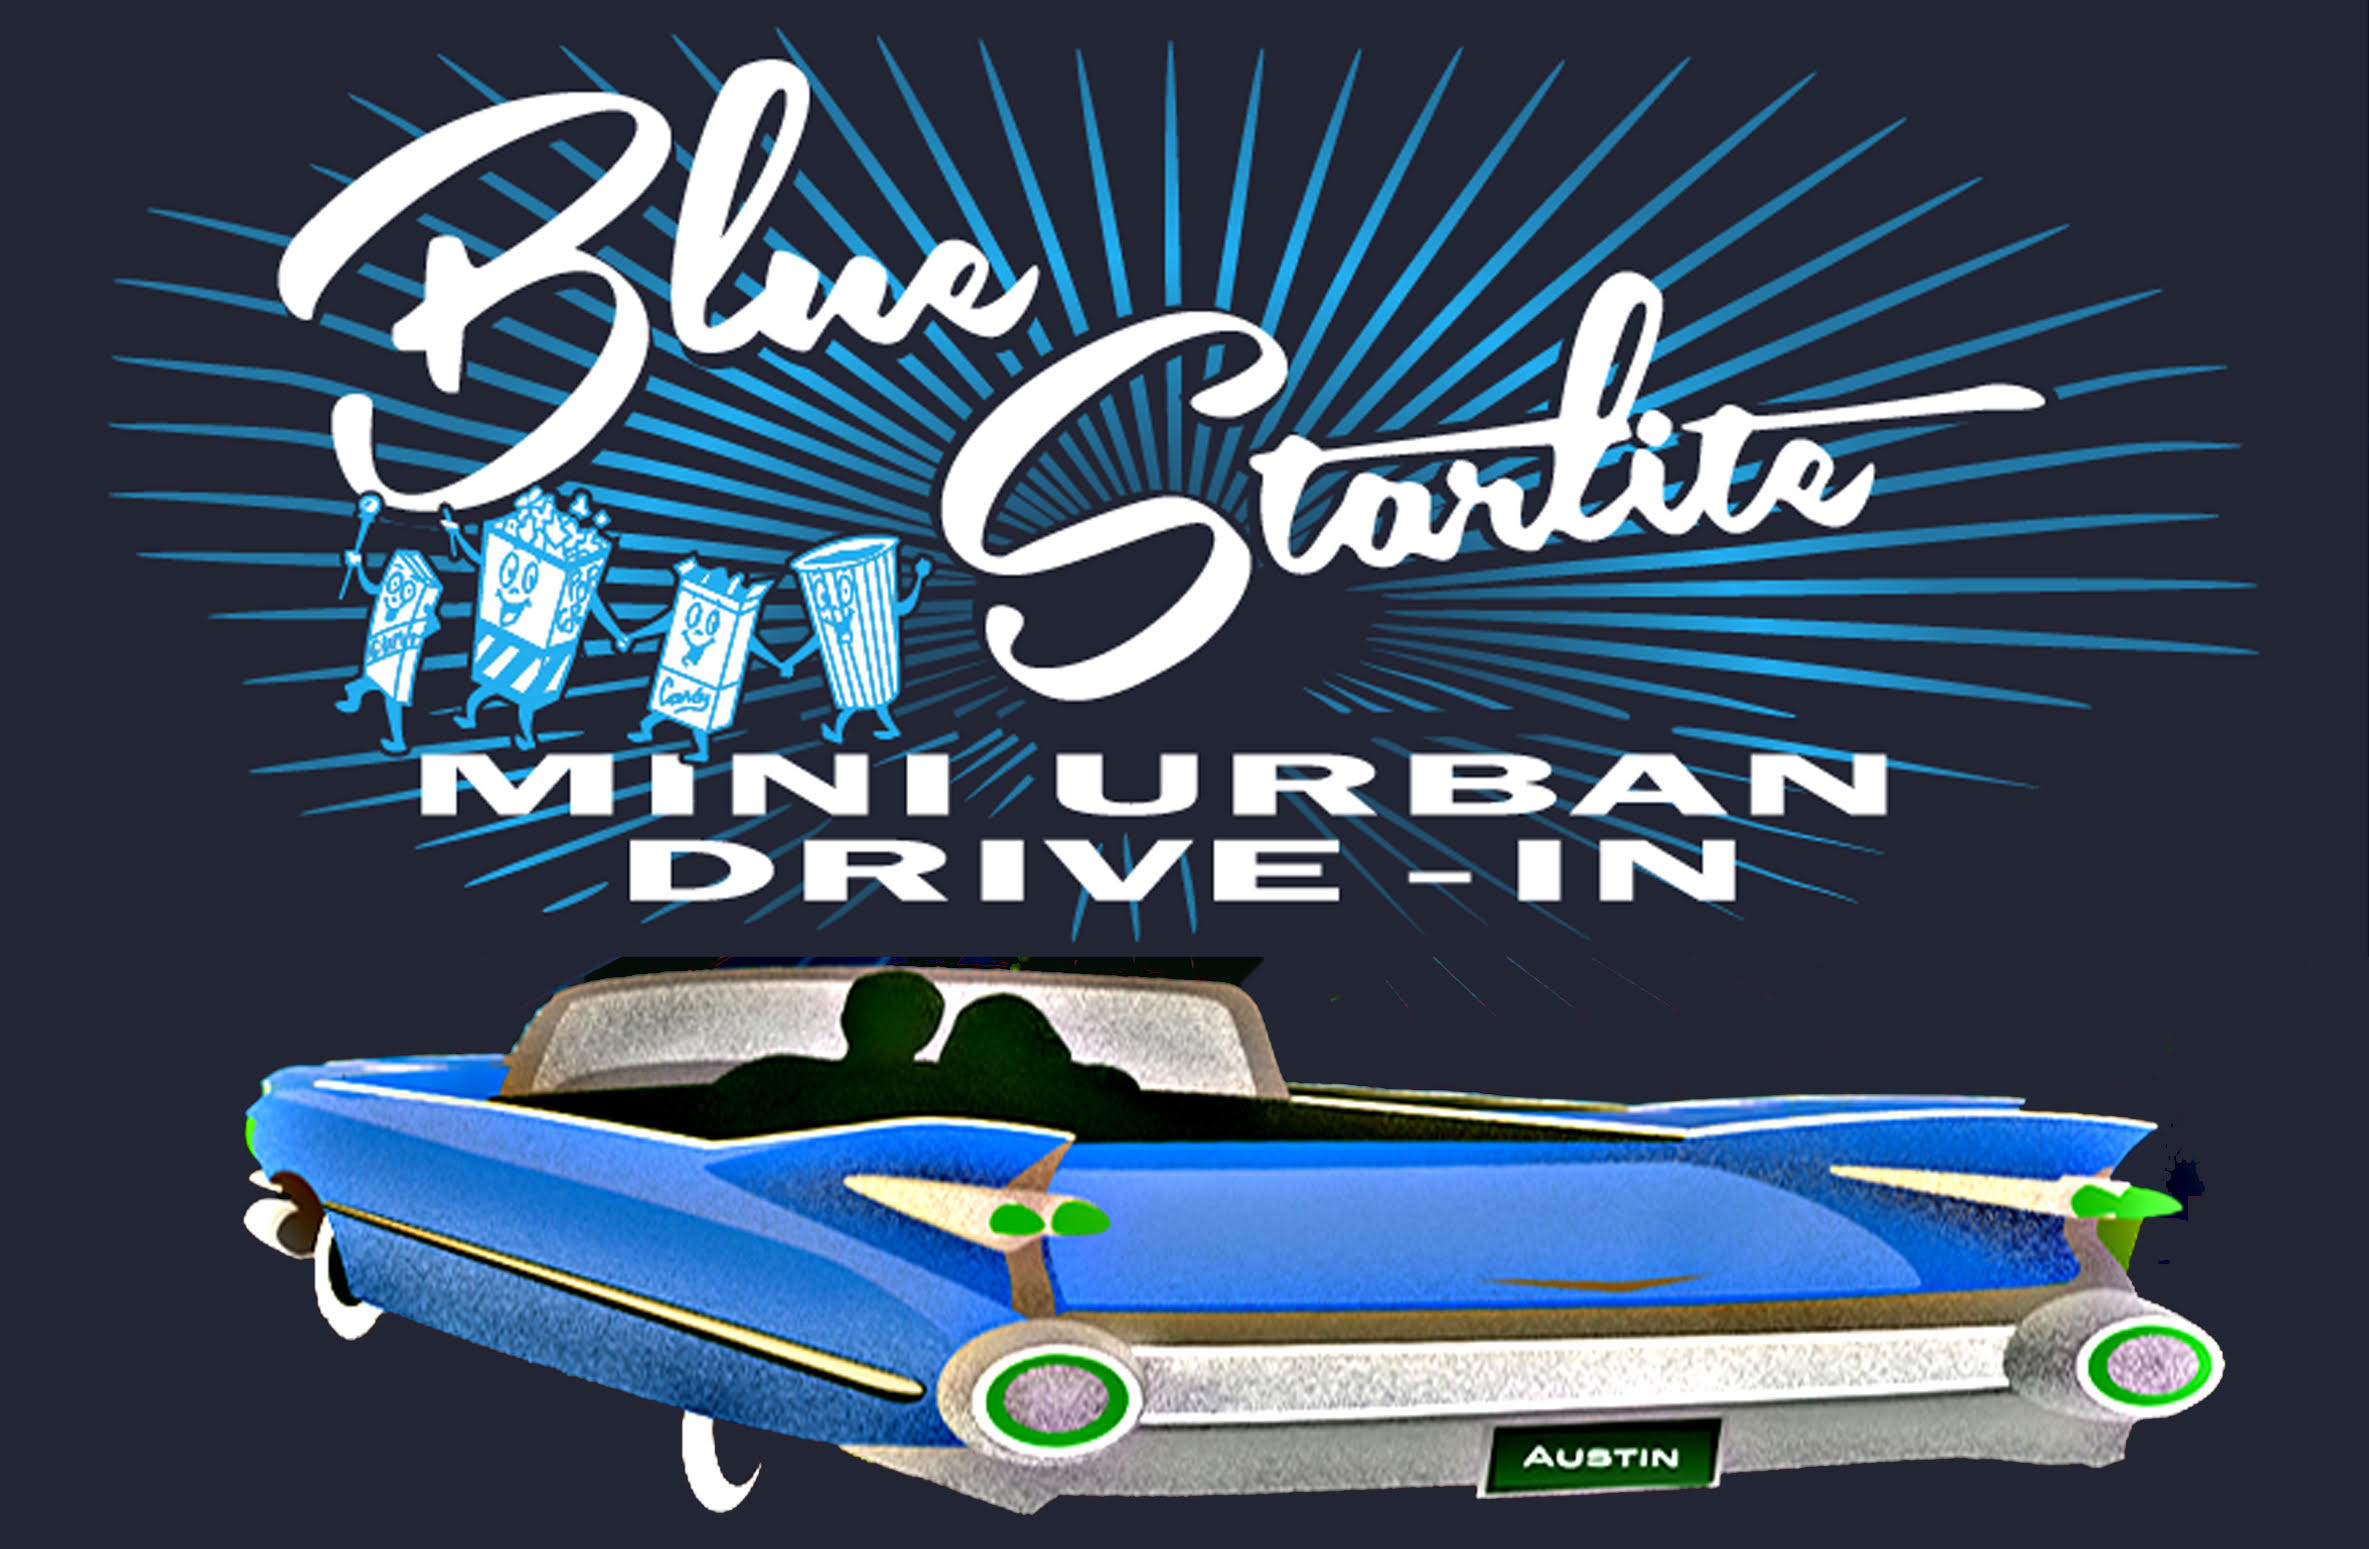 Mini Urban Drive In Movie Theatre The Blue Starlite